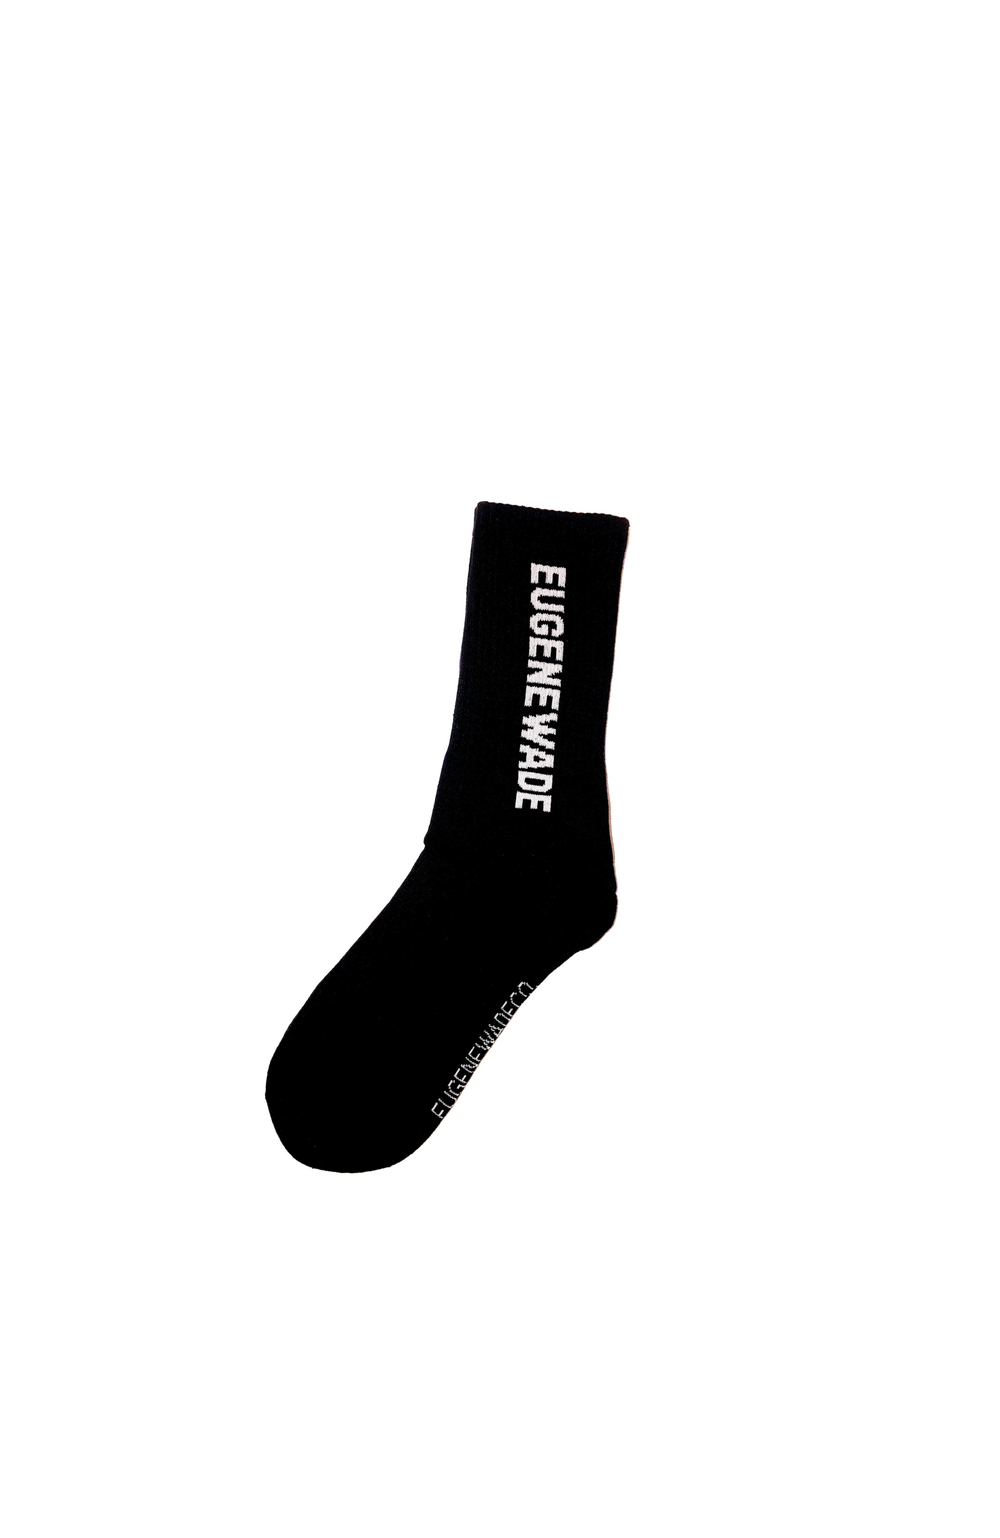 EW SPURS SOCKS (B/G)